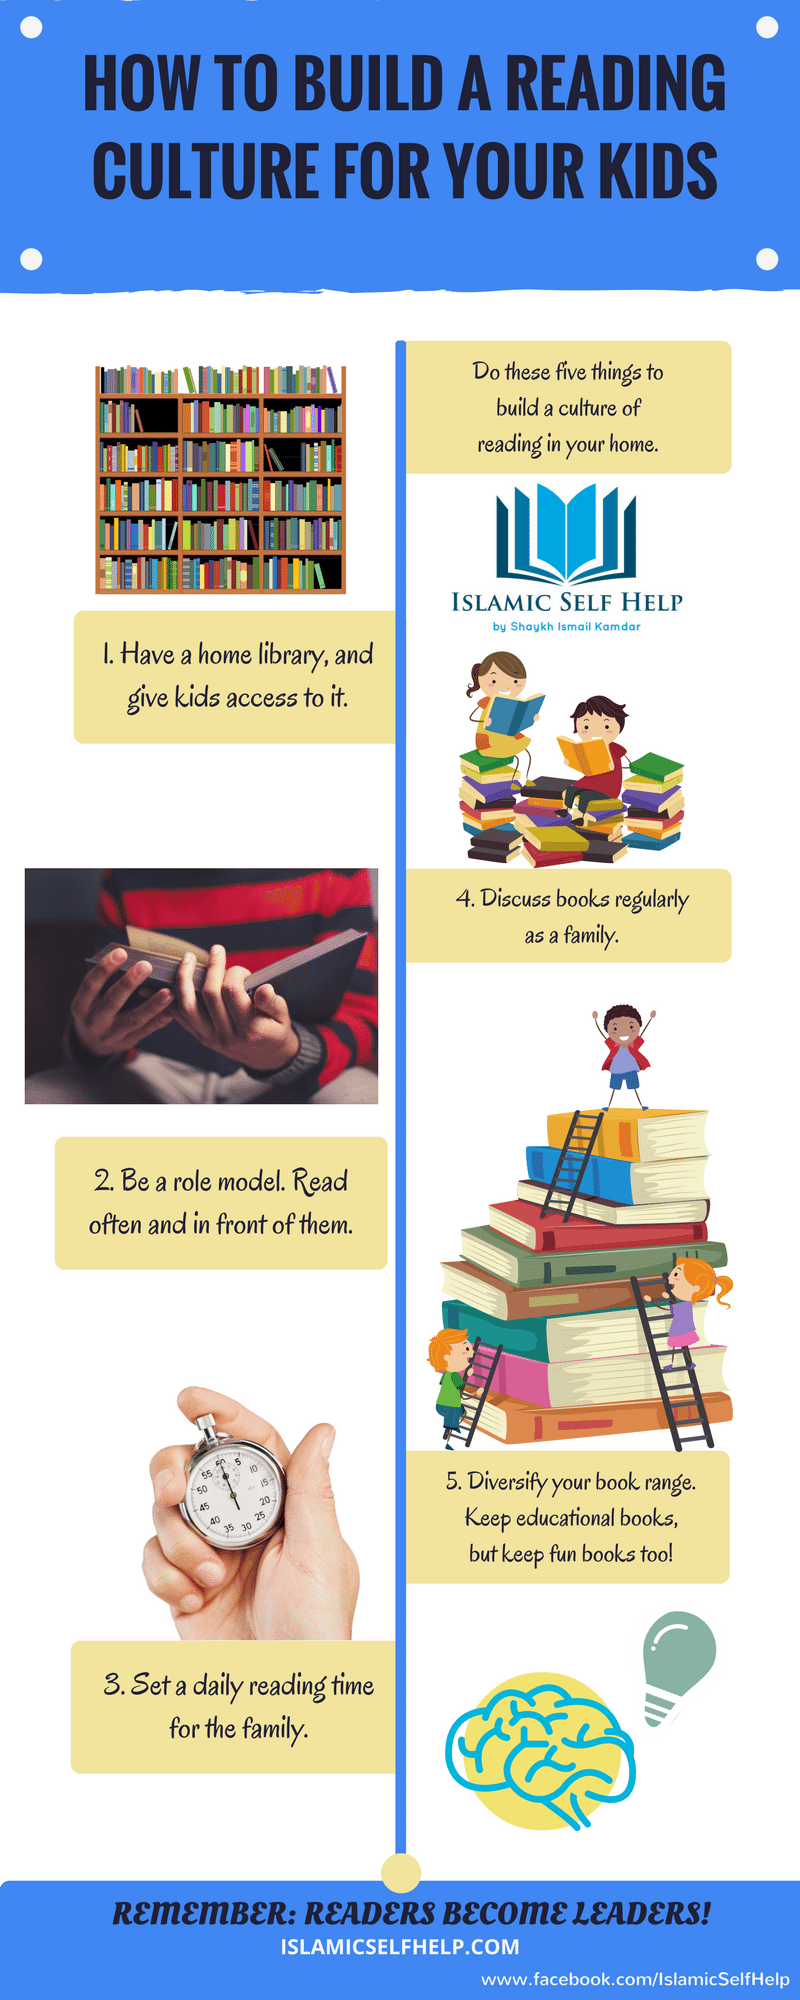 How to build a culture of reading for your kids